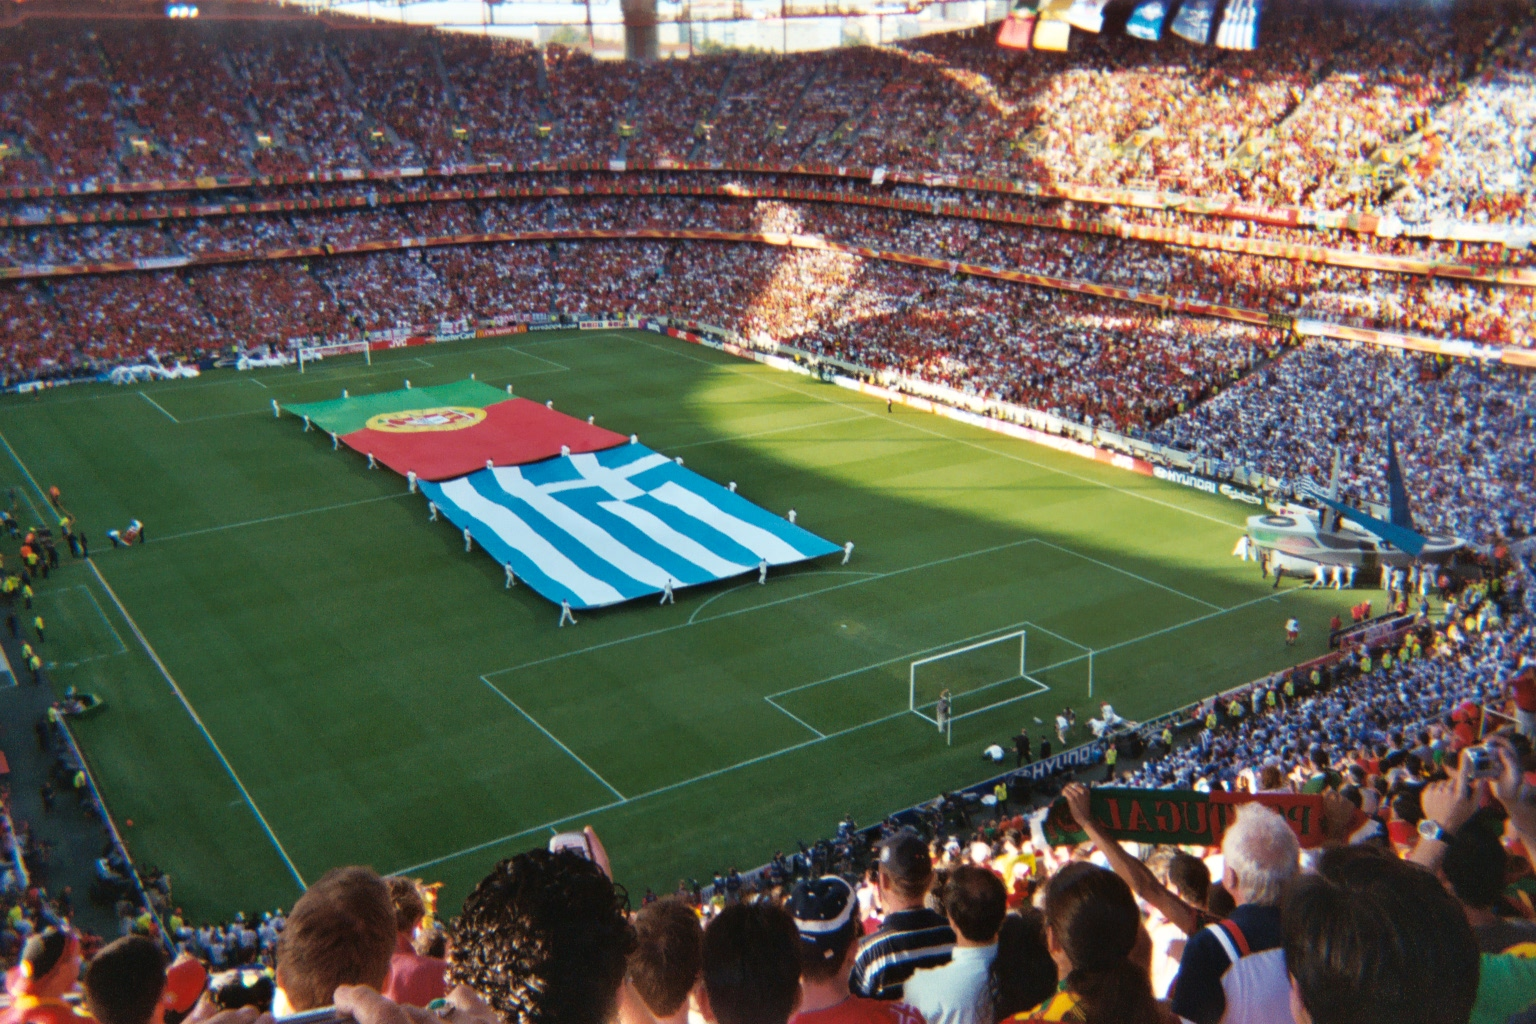 The Greek miracle at Euro 2004 | An imperfect story of identity - The Final